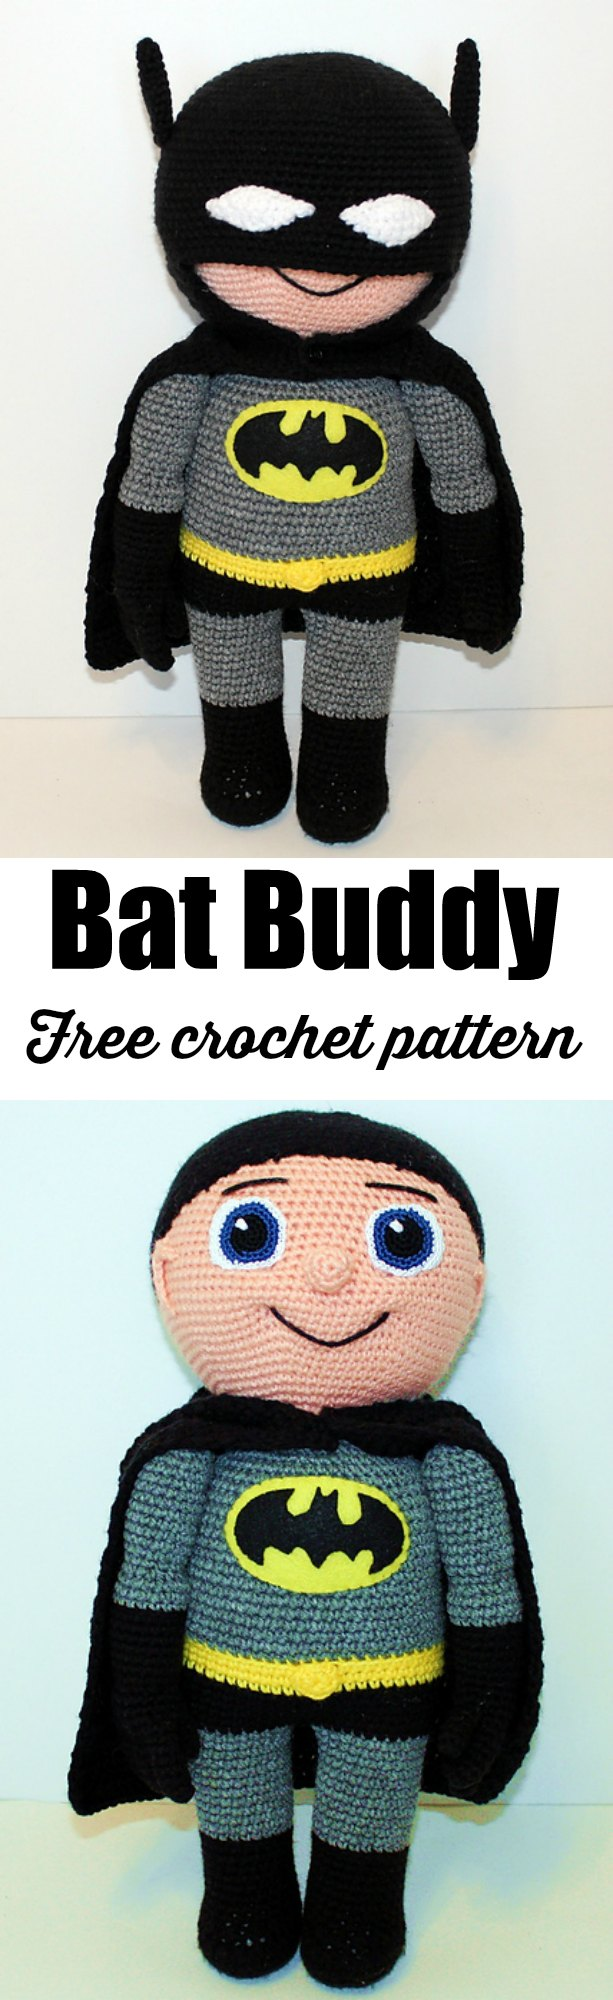 Crochet Doll Patterns Free Written Patterns And Video Tutorials